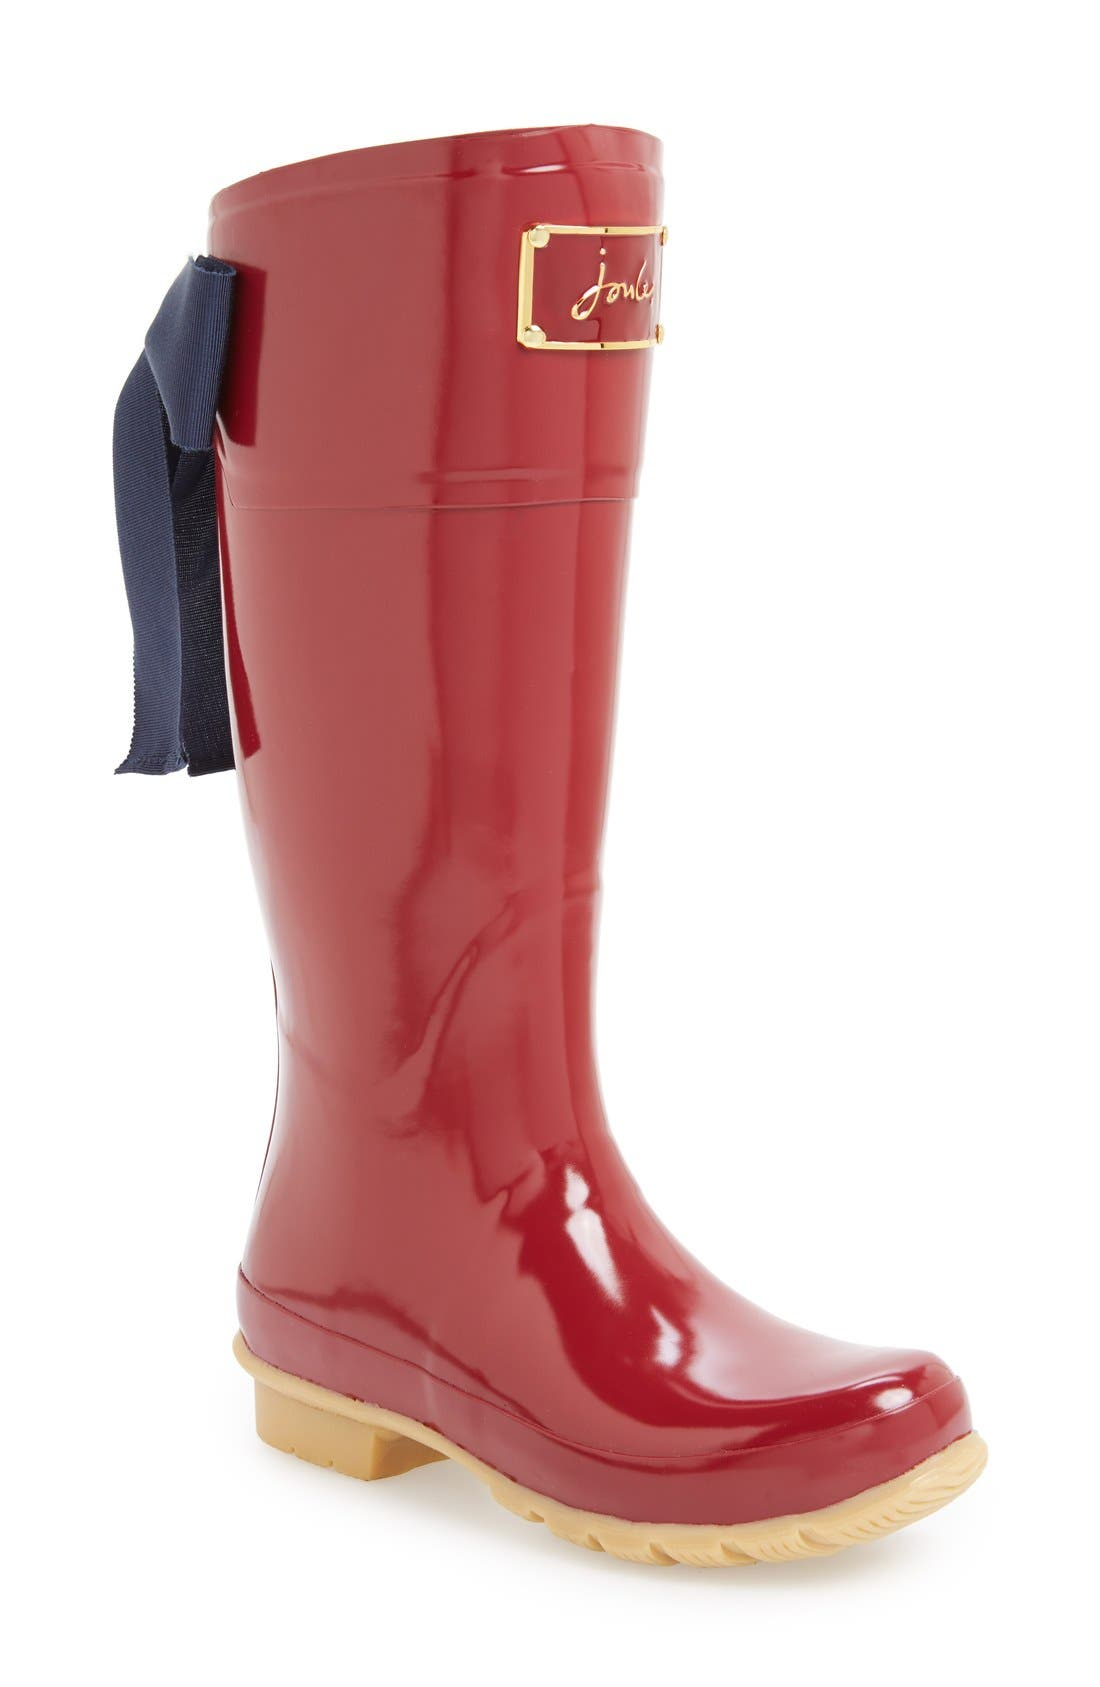 Alternate Image 1 Selected - Joules 'Evedon' Rain Boot (Women)